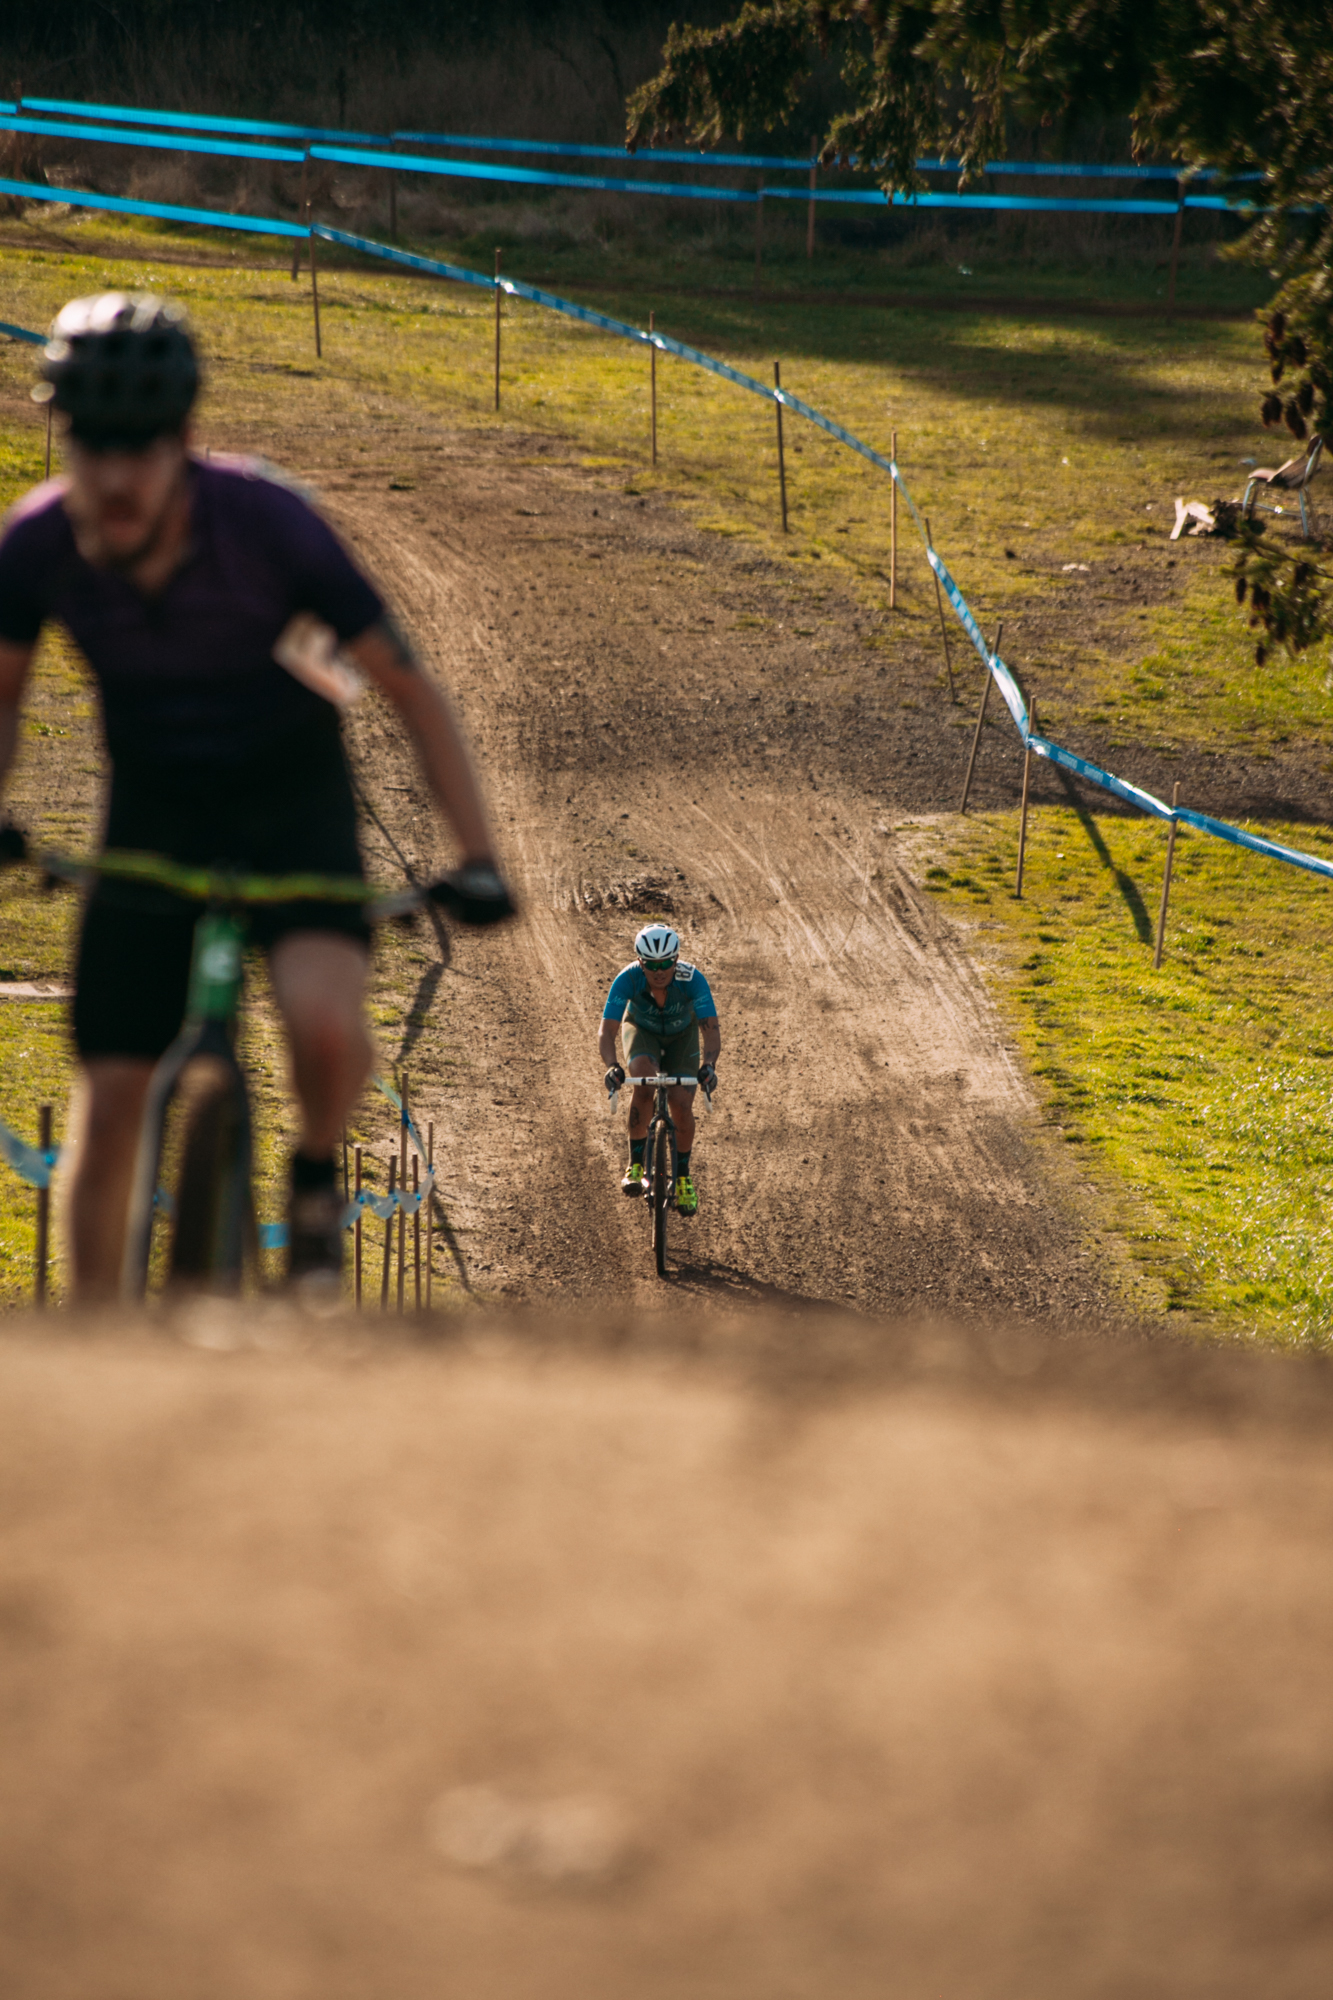 Cyclocross18_CCCX_RainierHS-241-mettlecycling.jpg